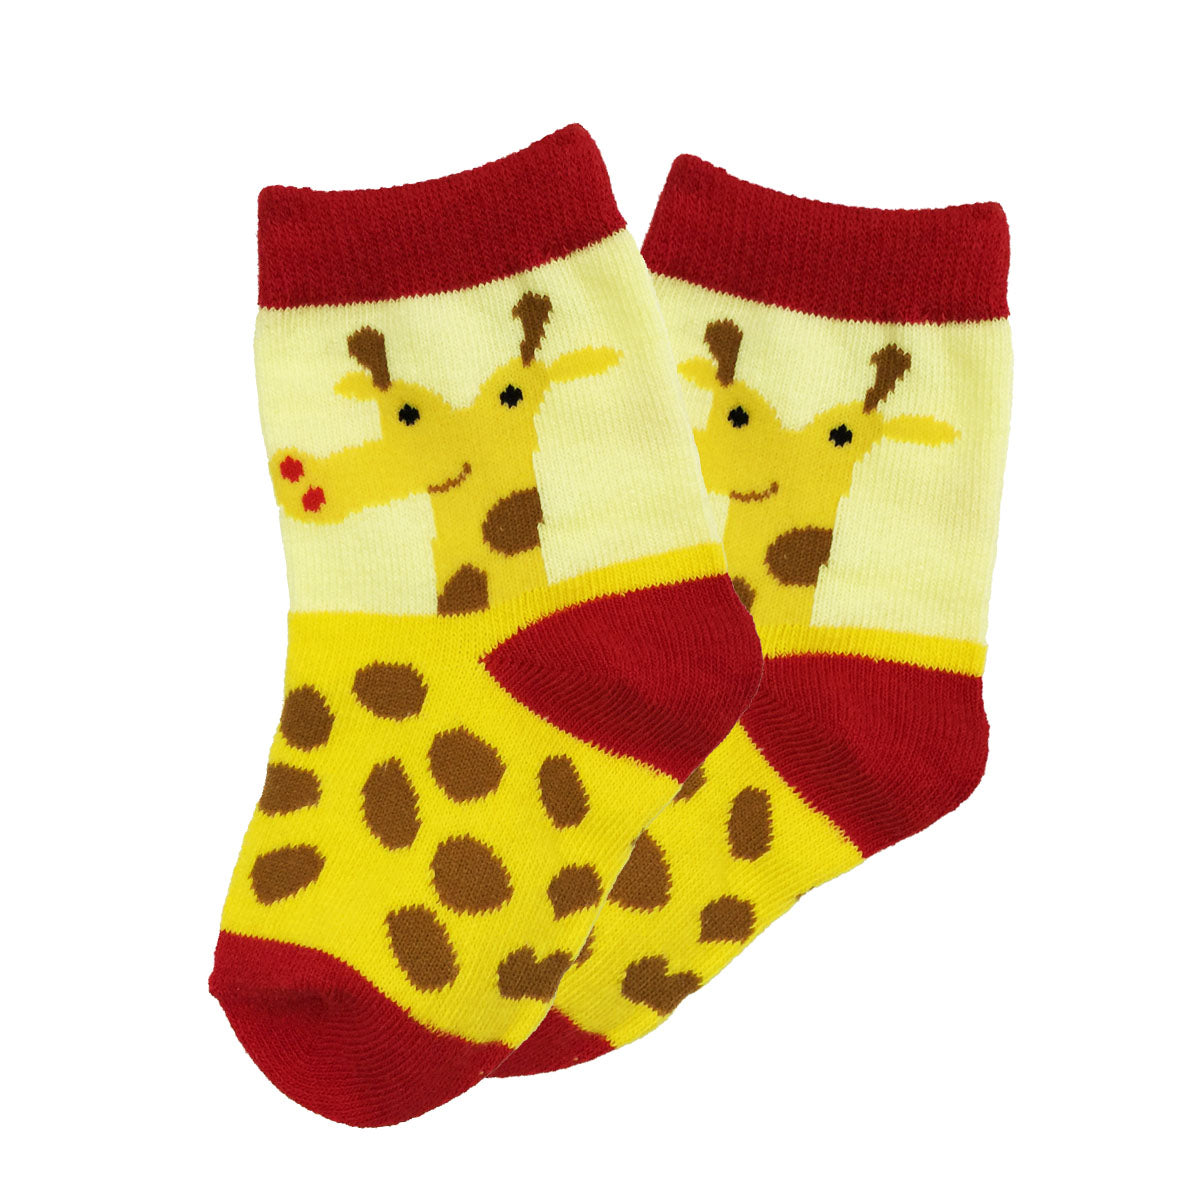 Wrapables Funny Zoo Animal Socks for Toddlers (Set of 3)